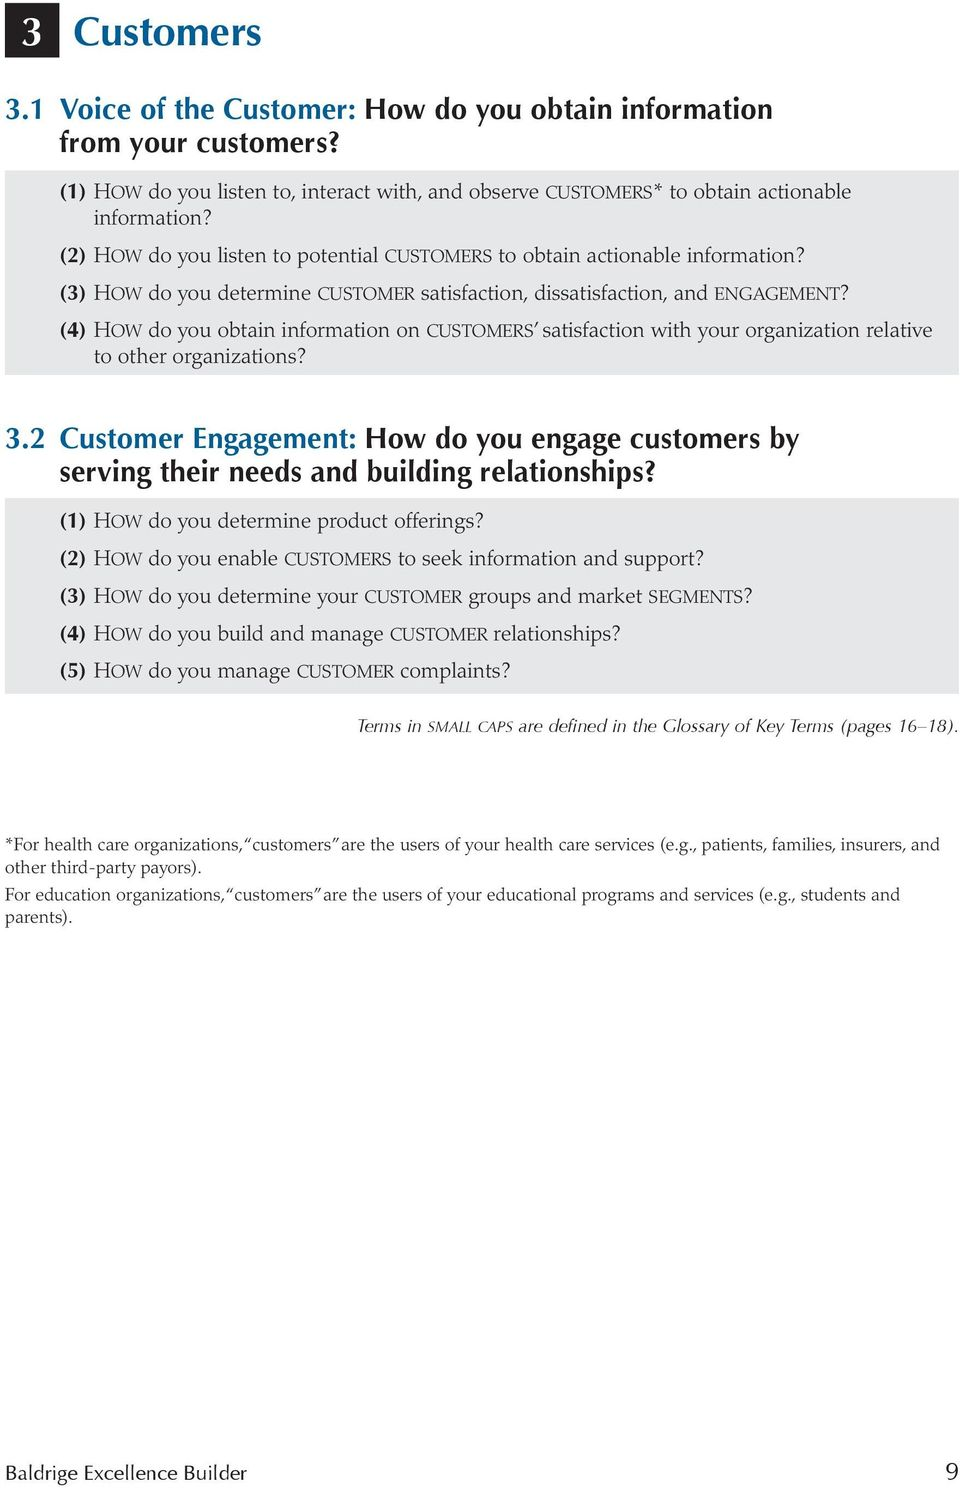 (4) how do you obtain information on customers satisfaction with your organization relative to other organizations? 3.